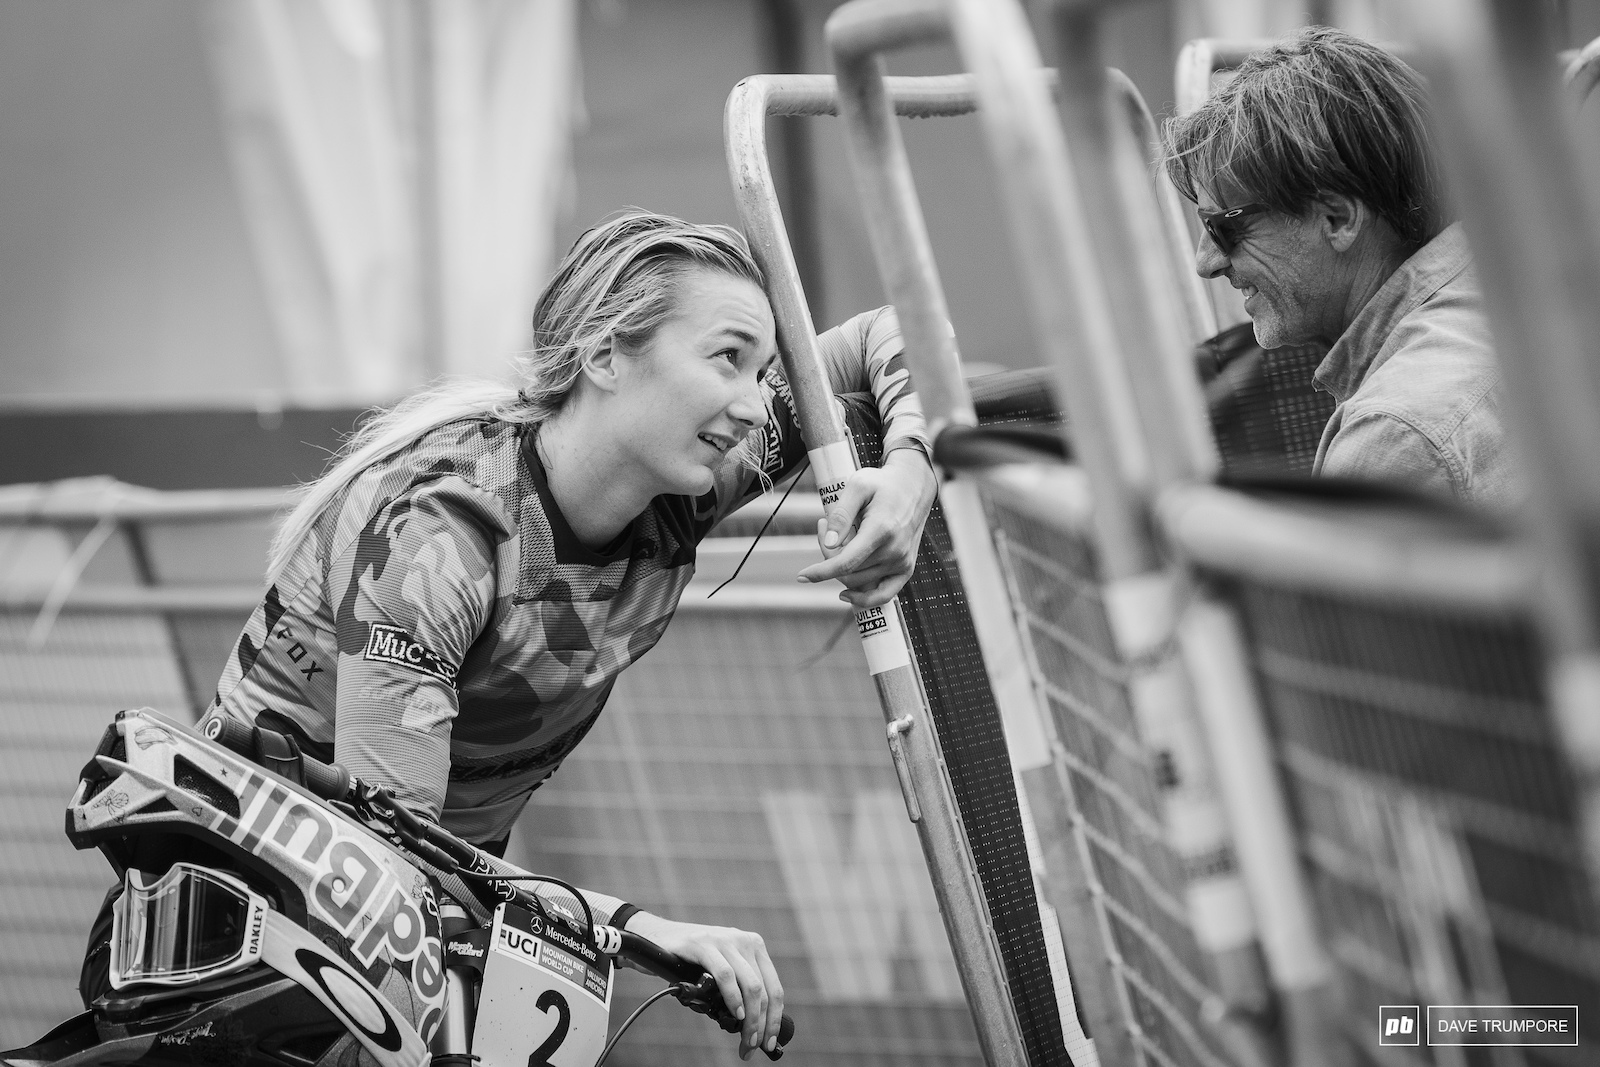 Tahnee Seagave checks in with Max Commencal at the finish line to see how Myriam Nicole is doing as she recovers from a back injury.